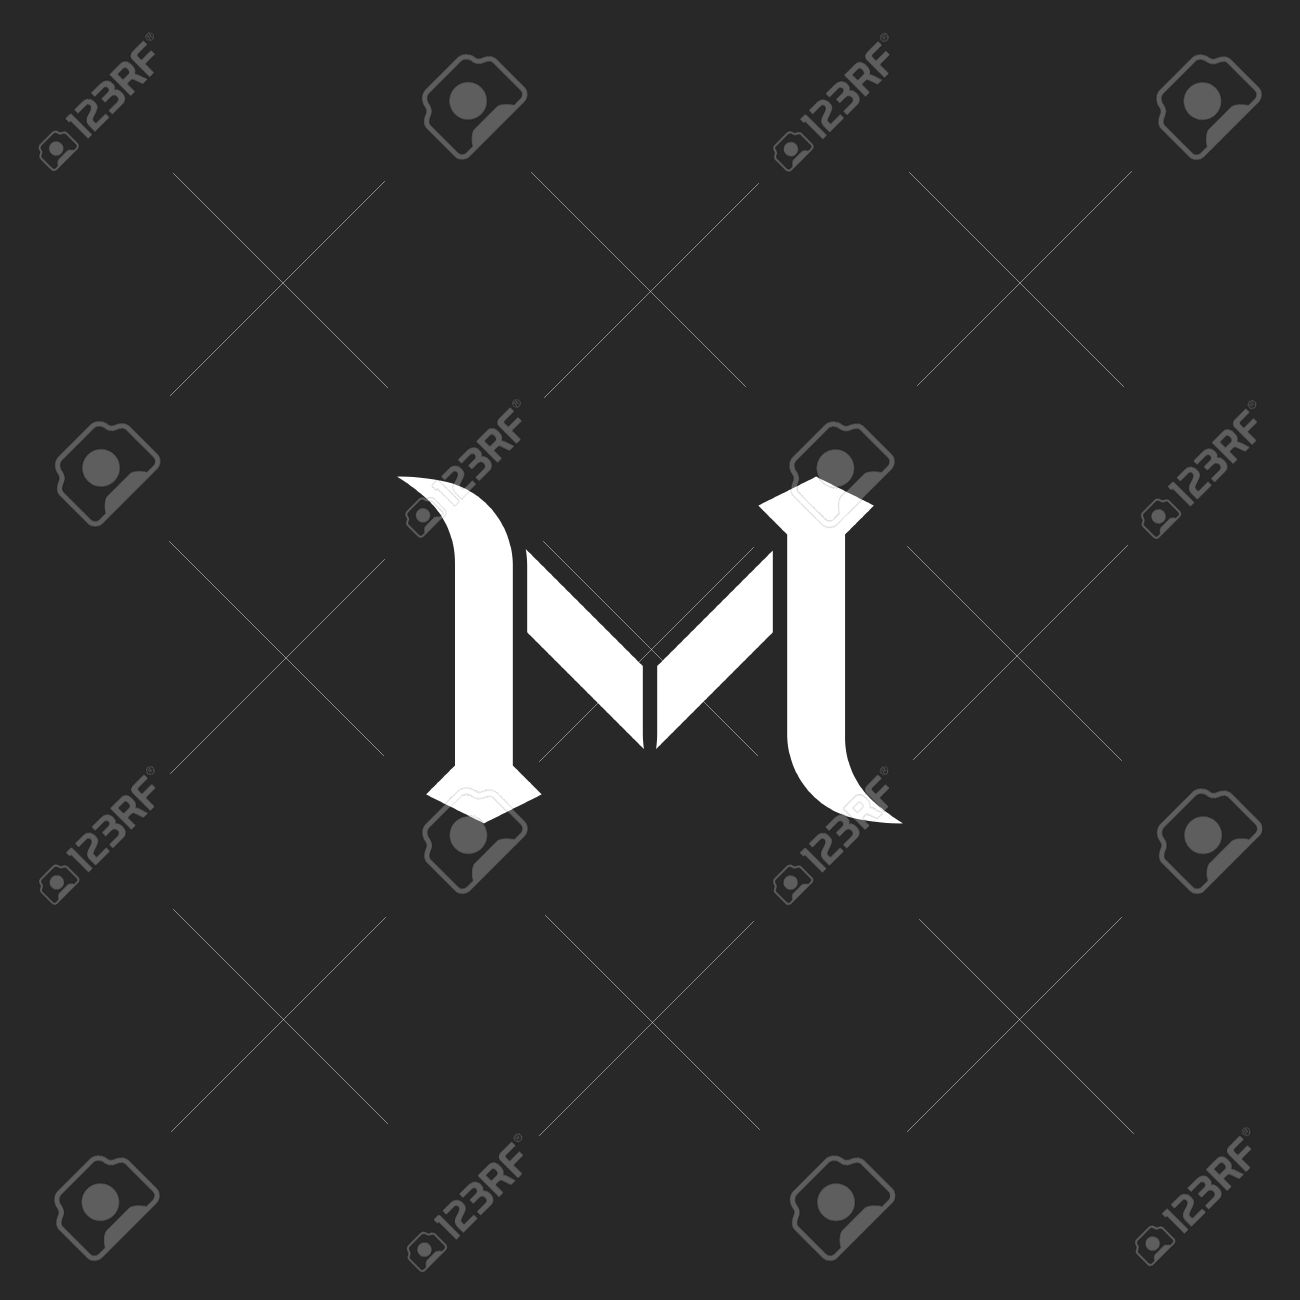 Letter m logo medieval style wedding invitation mockup vintage letter m logo medieval style wedding invitation mockup vintage calligraphic design element for business stopboris Image collections